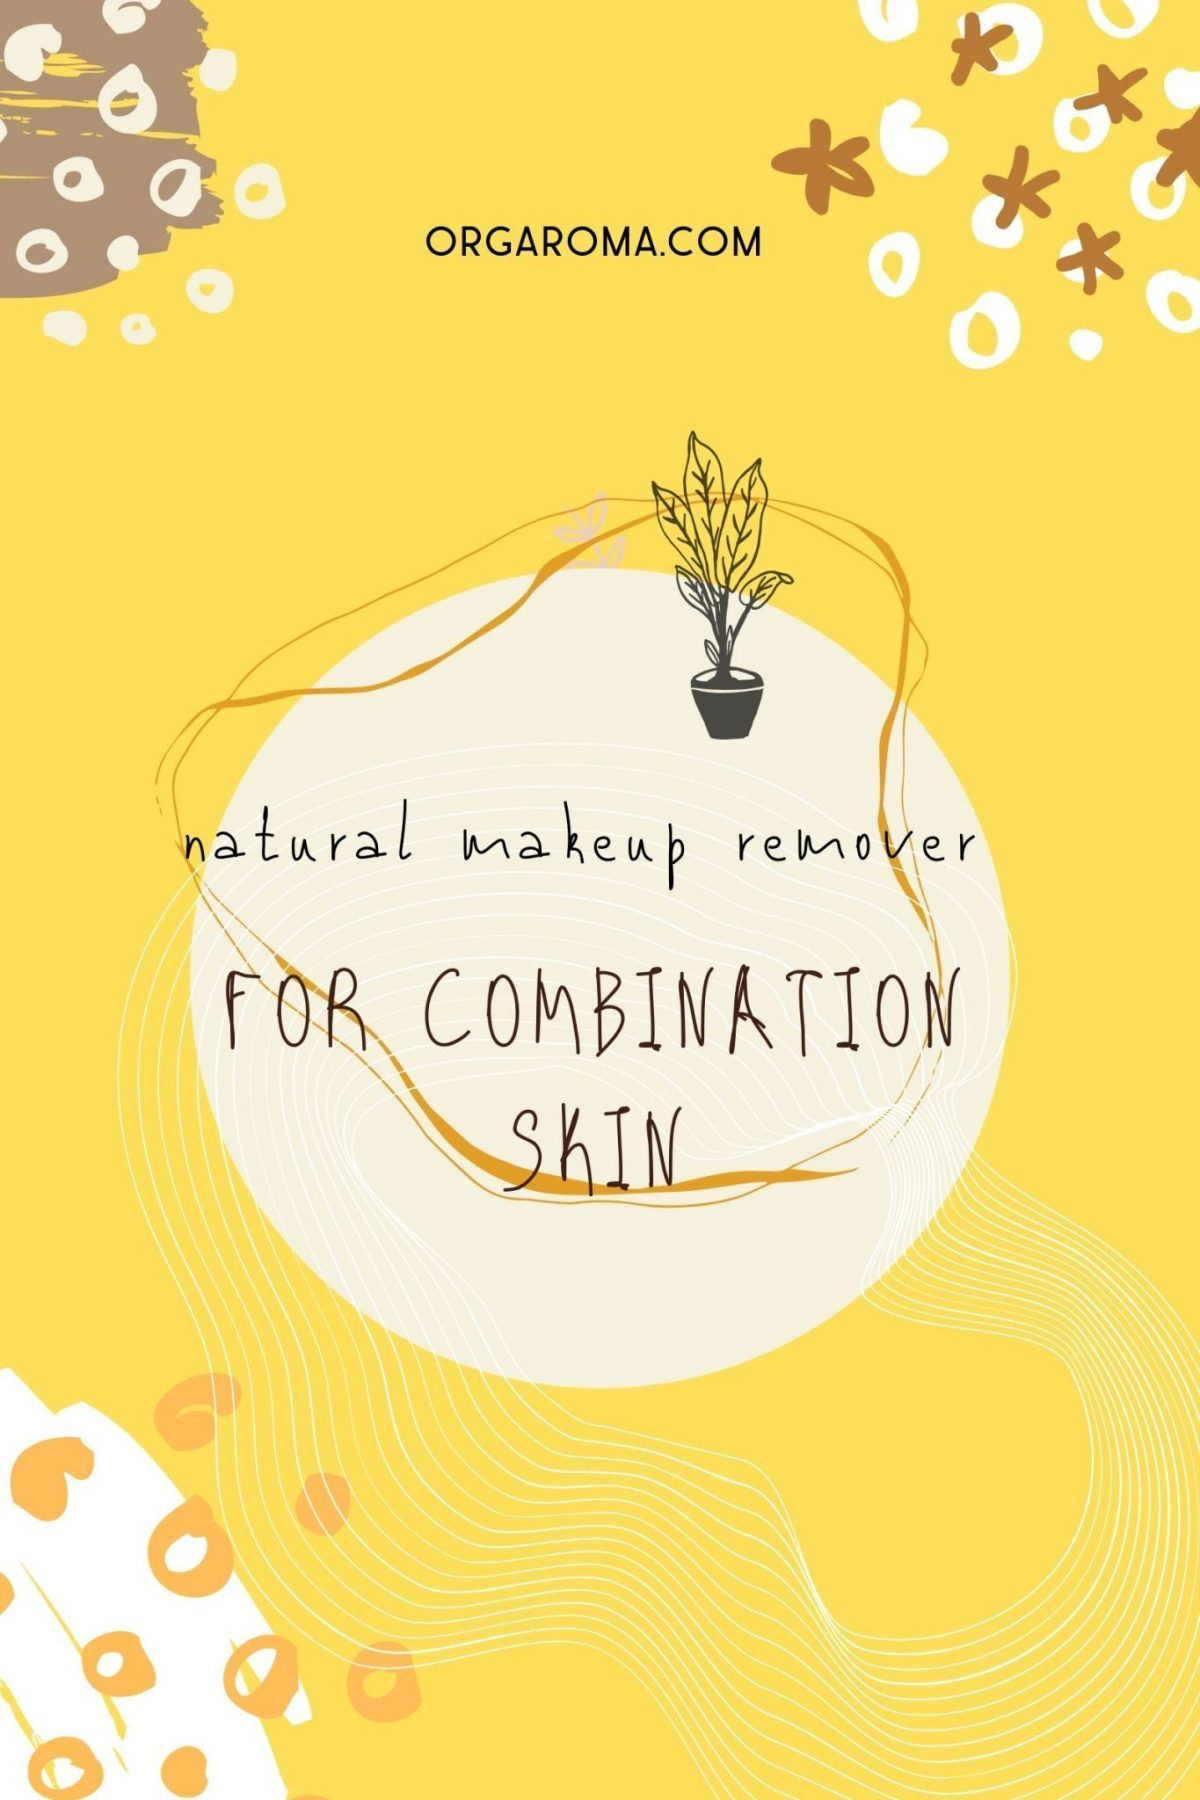 Jojoba oil + Witch Hazel natural makeup remover for